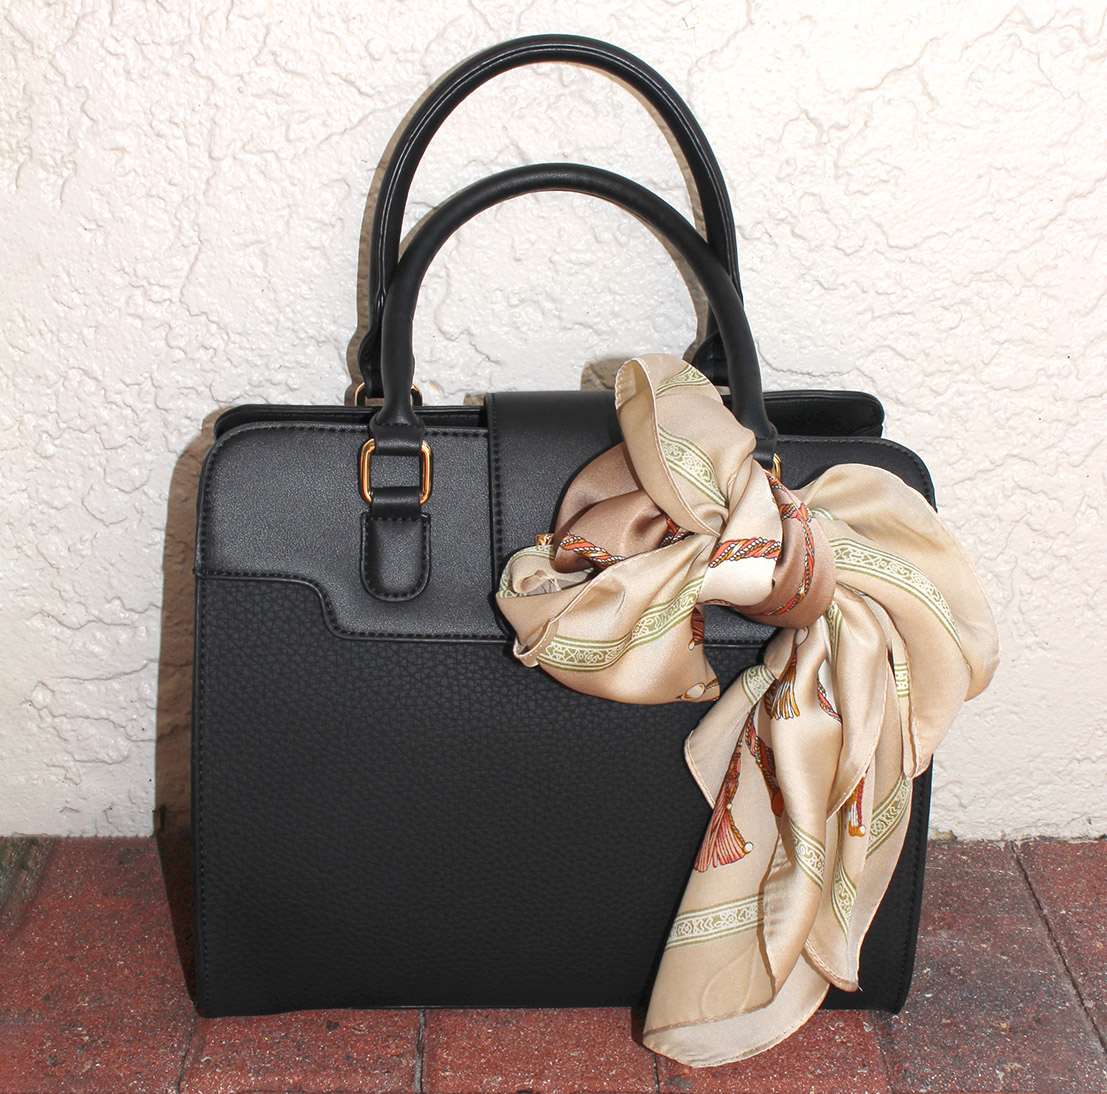 30+ Purse Scarf Images